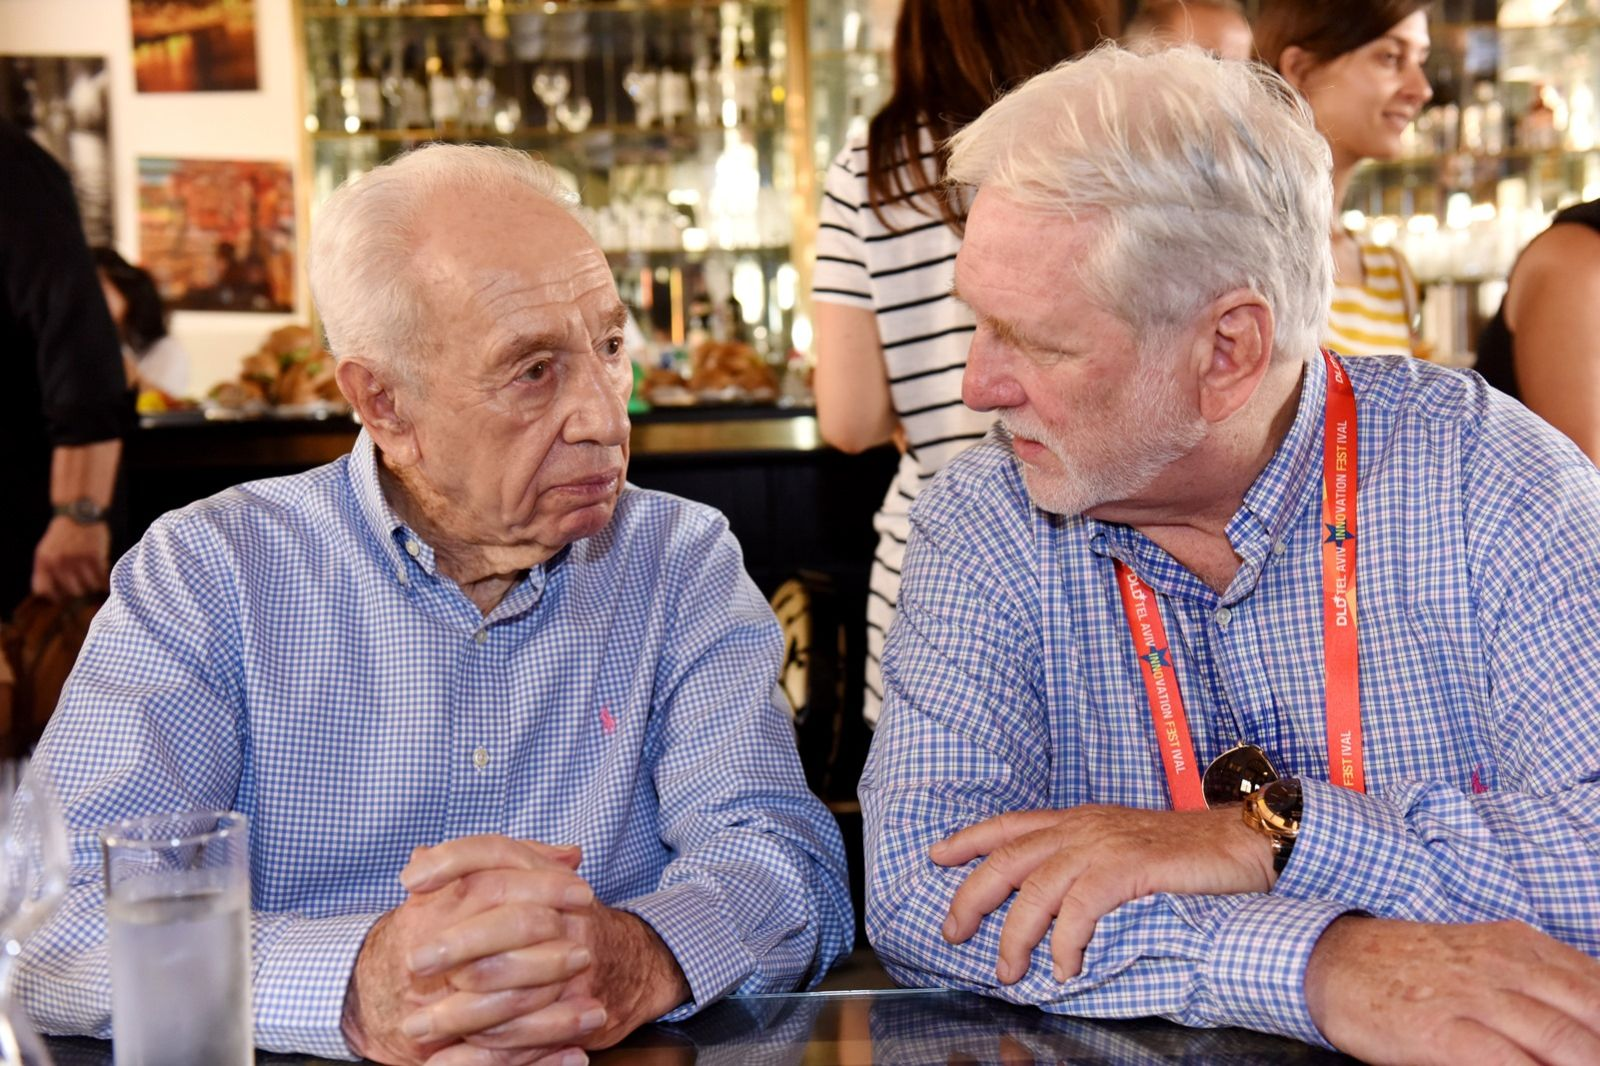 Archimedicx was one of three startups chosen to present to former president Shimon Peres at DLD Innovation Festival in Tel Aviv last September. Here founder and CEO Moni Milchman is pictured with Peres. Photo: courtesy